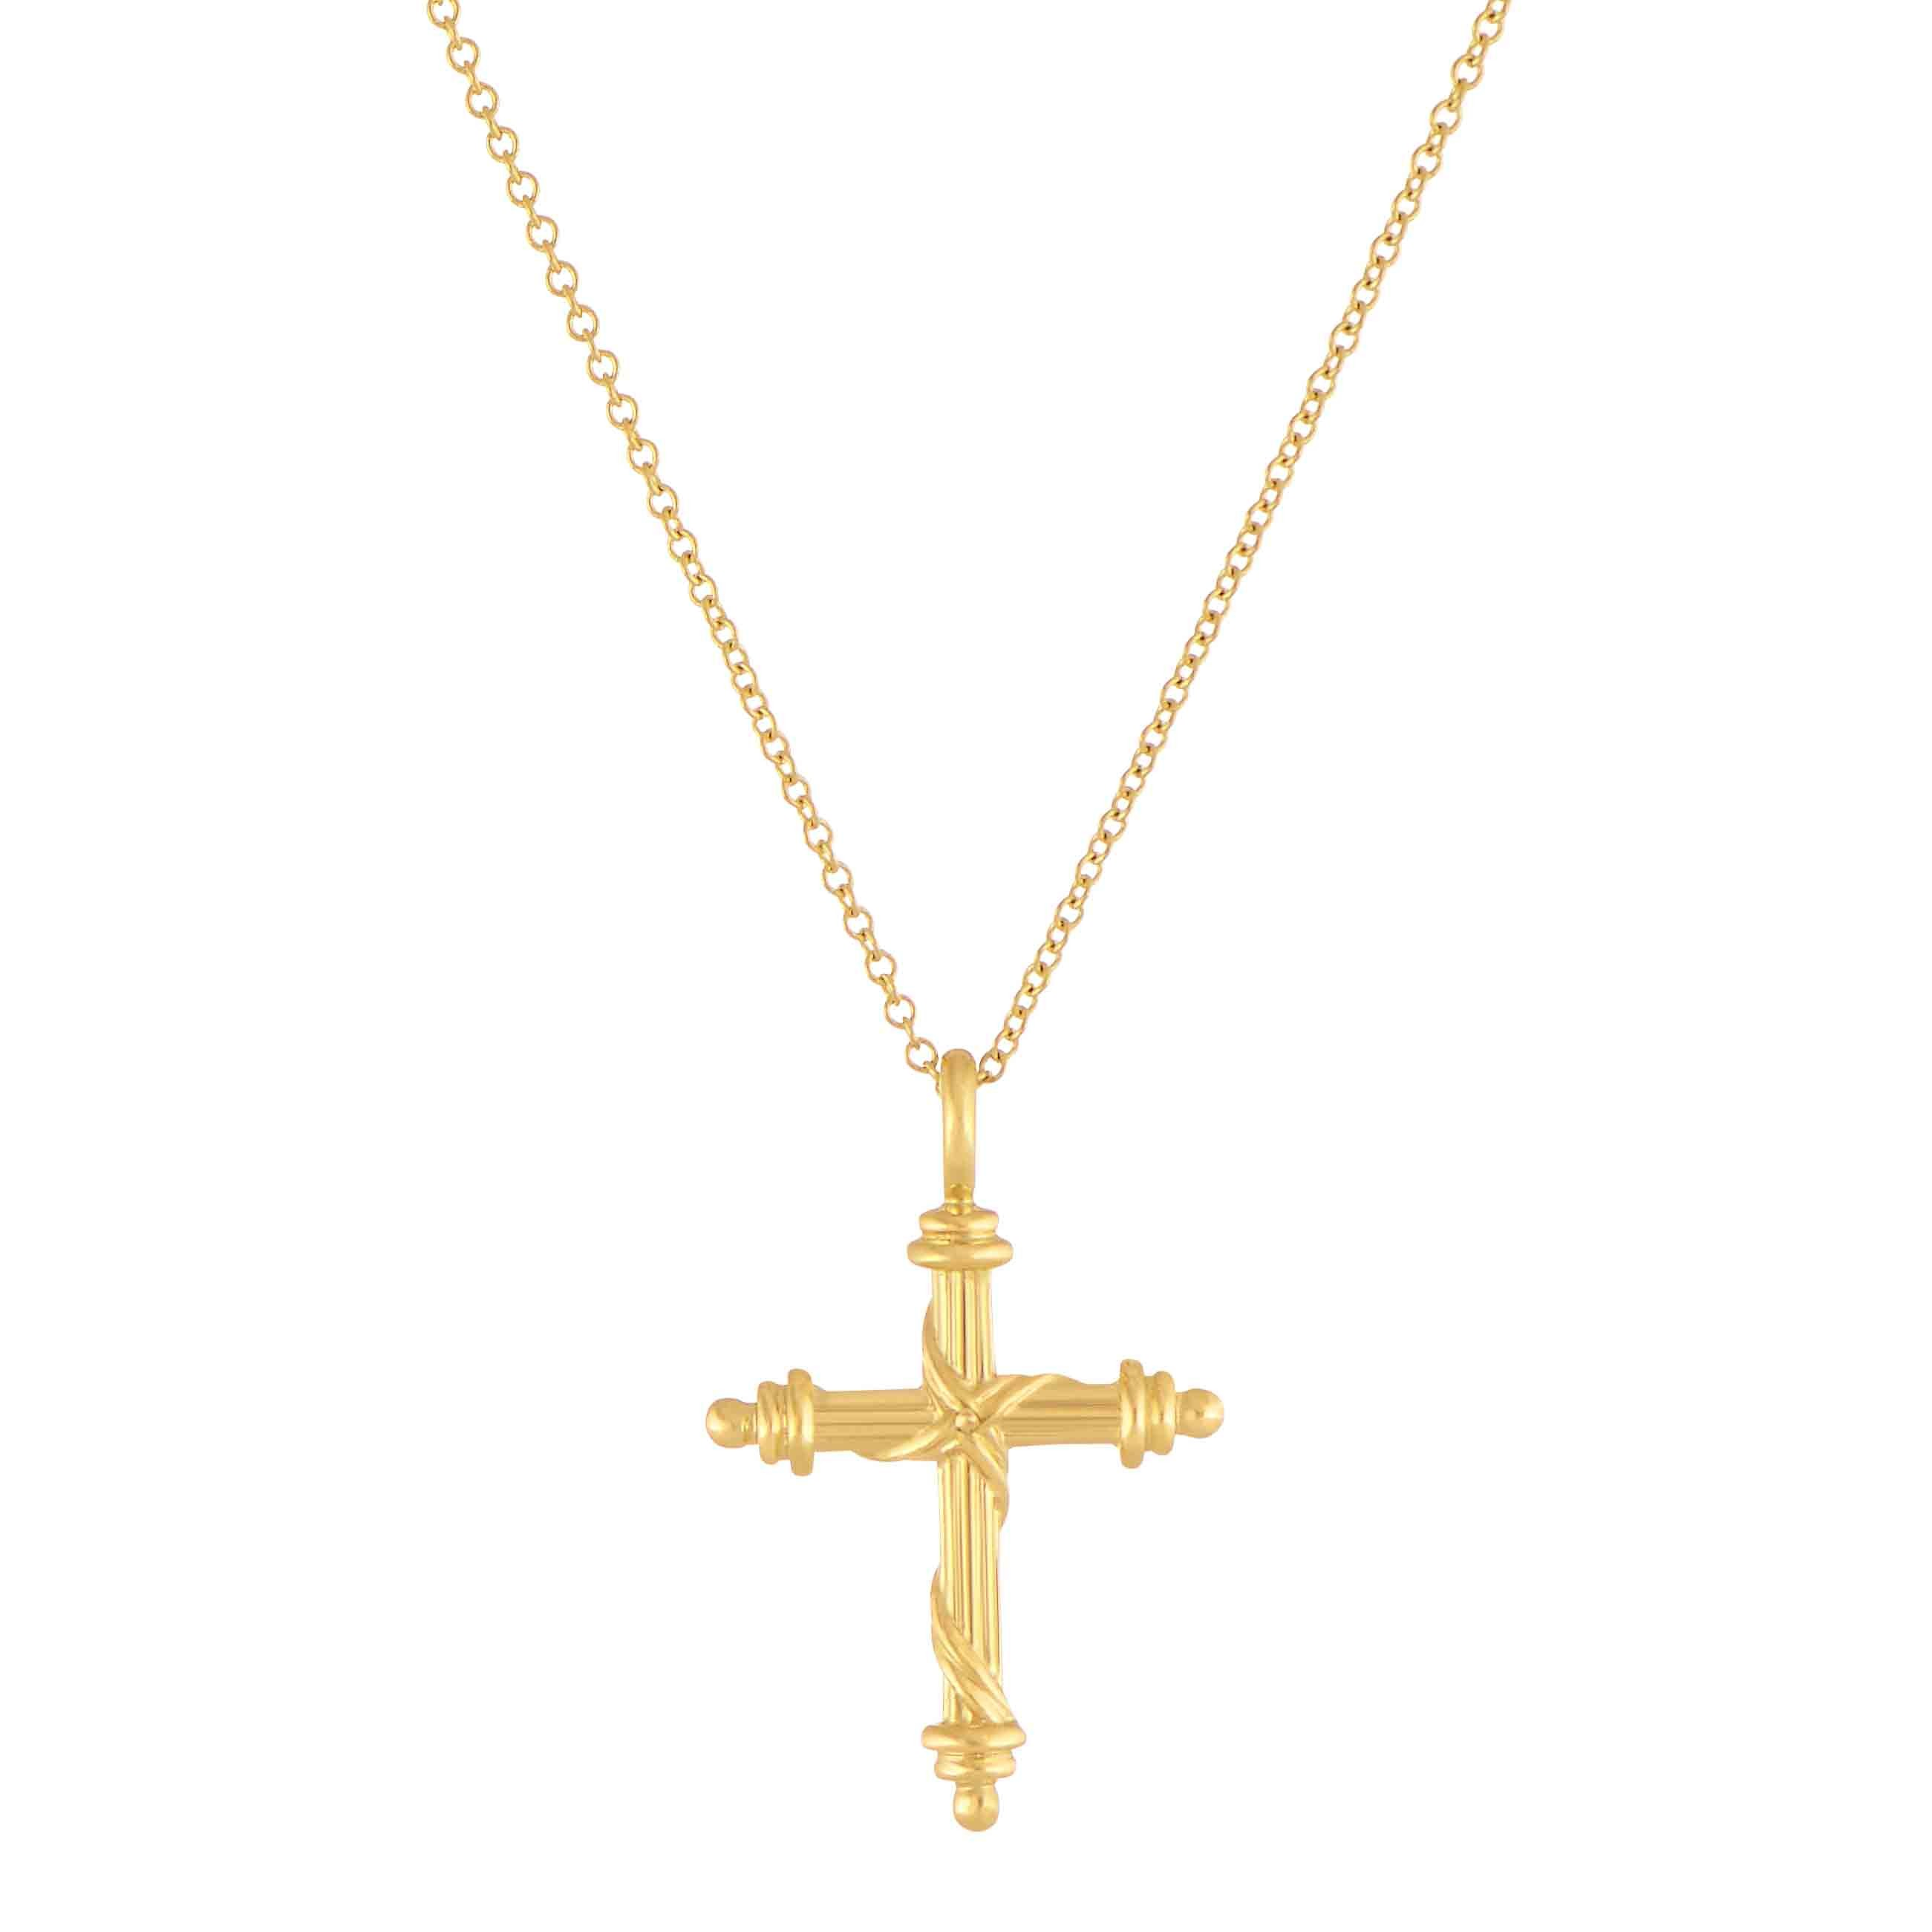 Heritage cross pendant necklace in 18k yellow gold mini heritage mini cross necklace in 18k yellow gold 18 adjustable chain audiocablefo